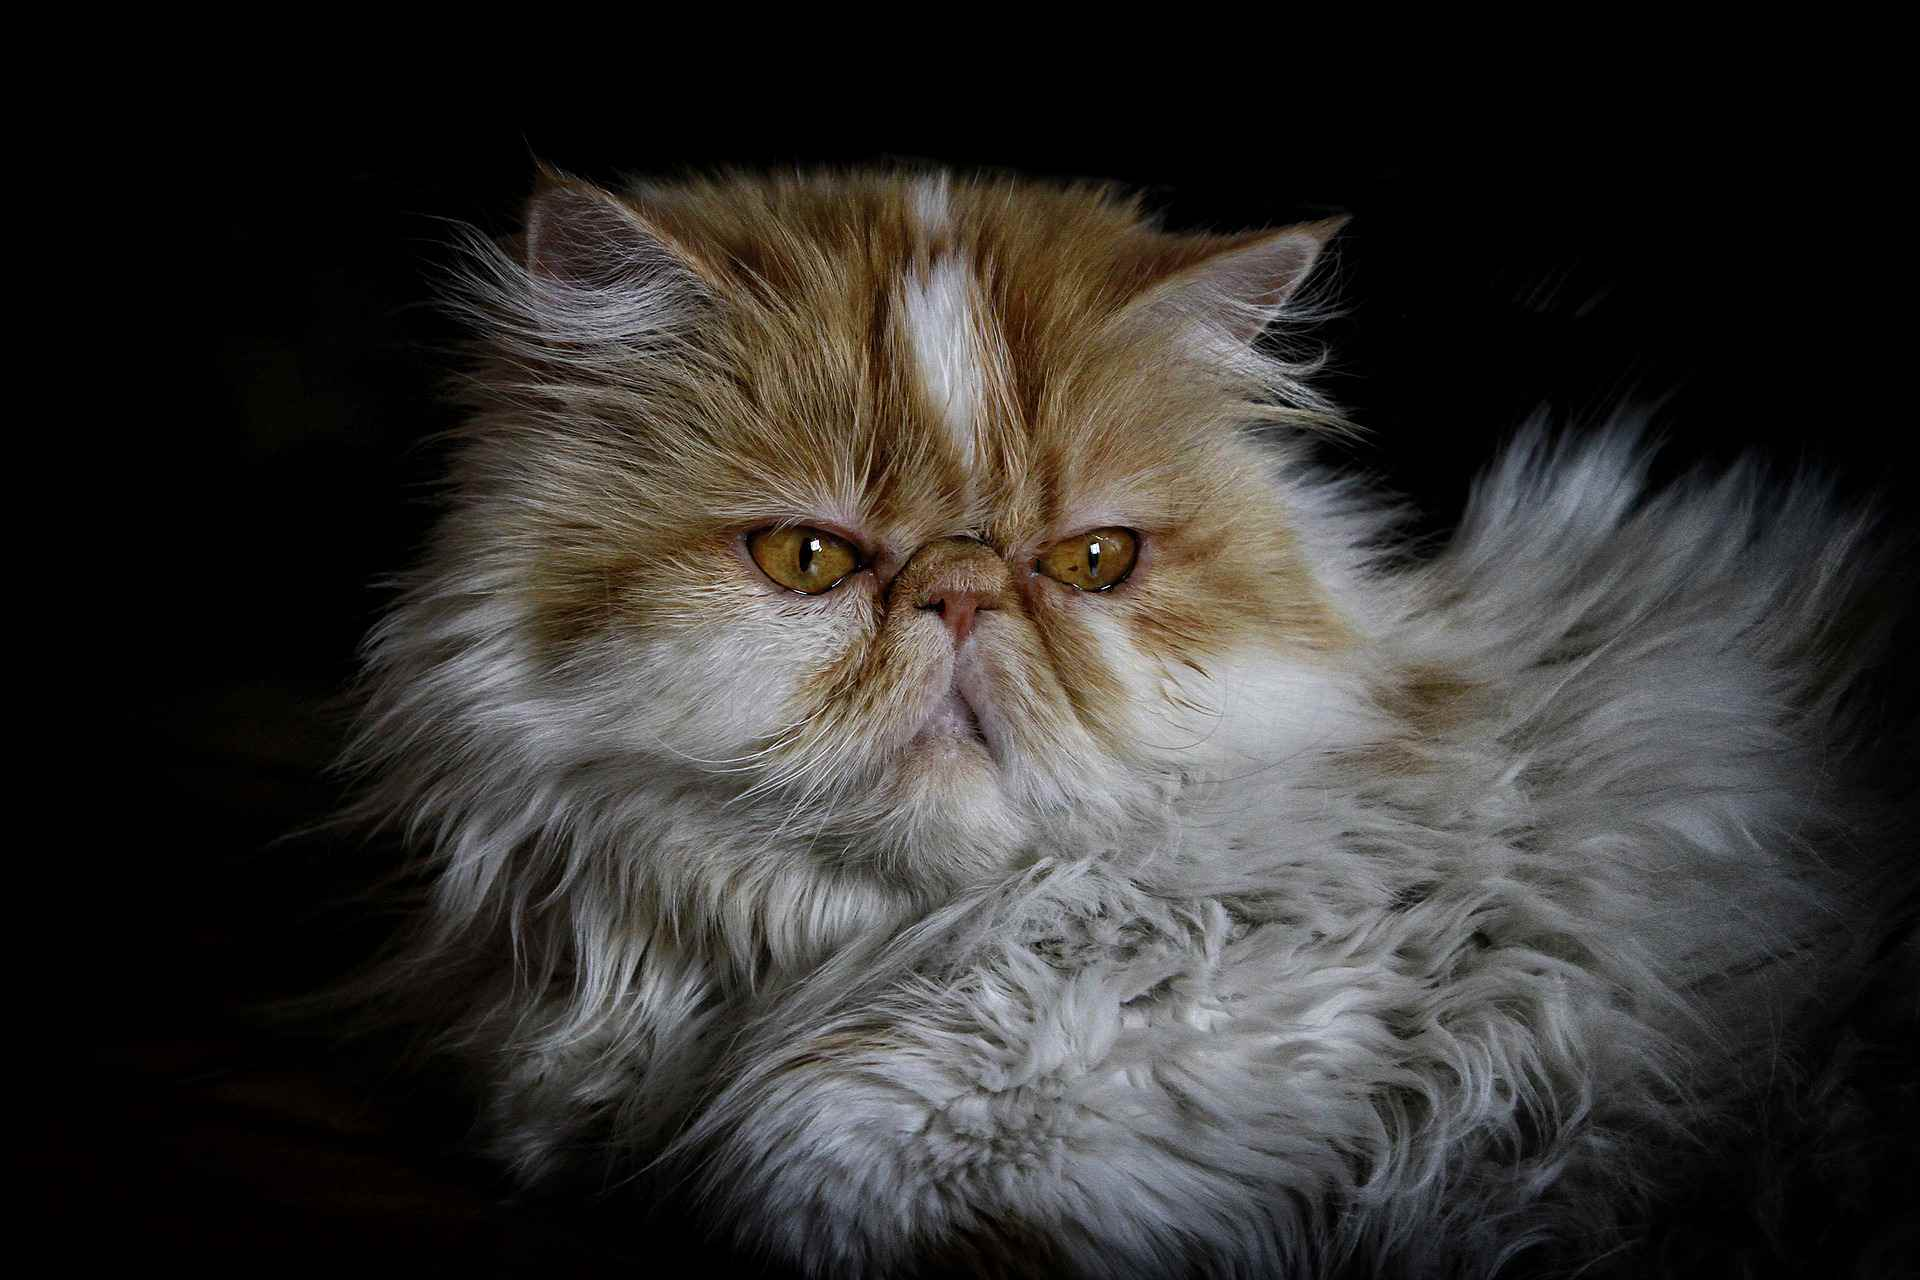 An orange and white Persian cat against a black background.